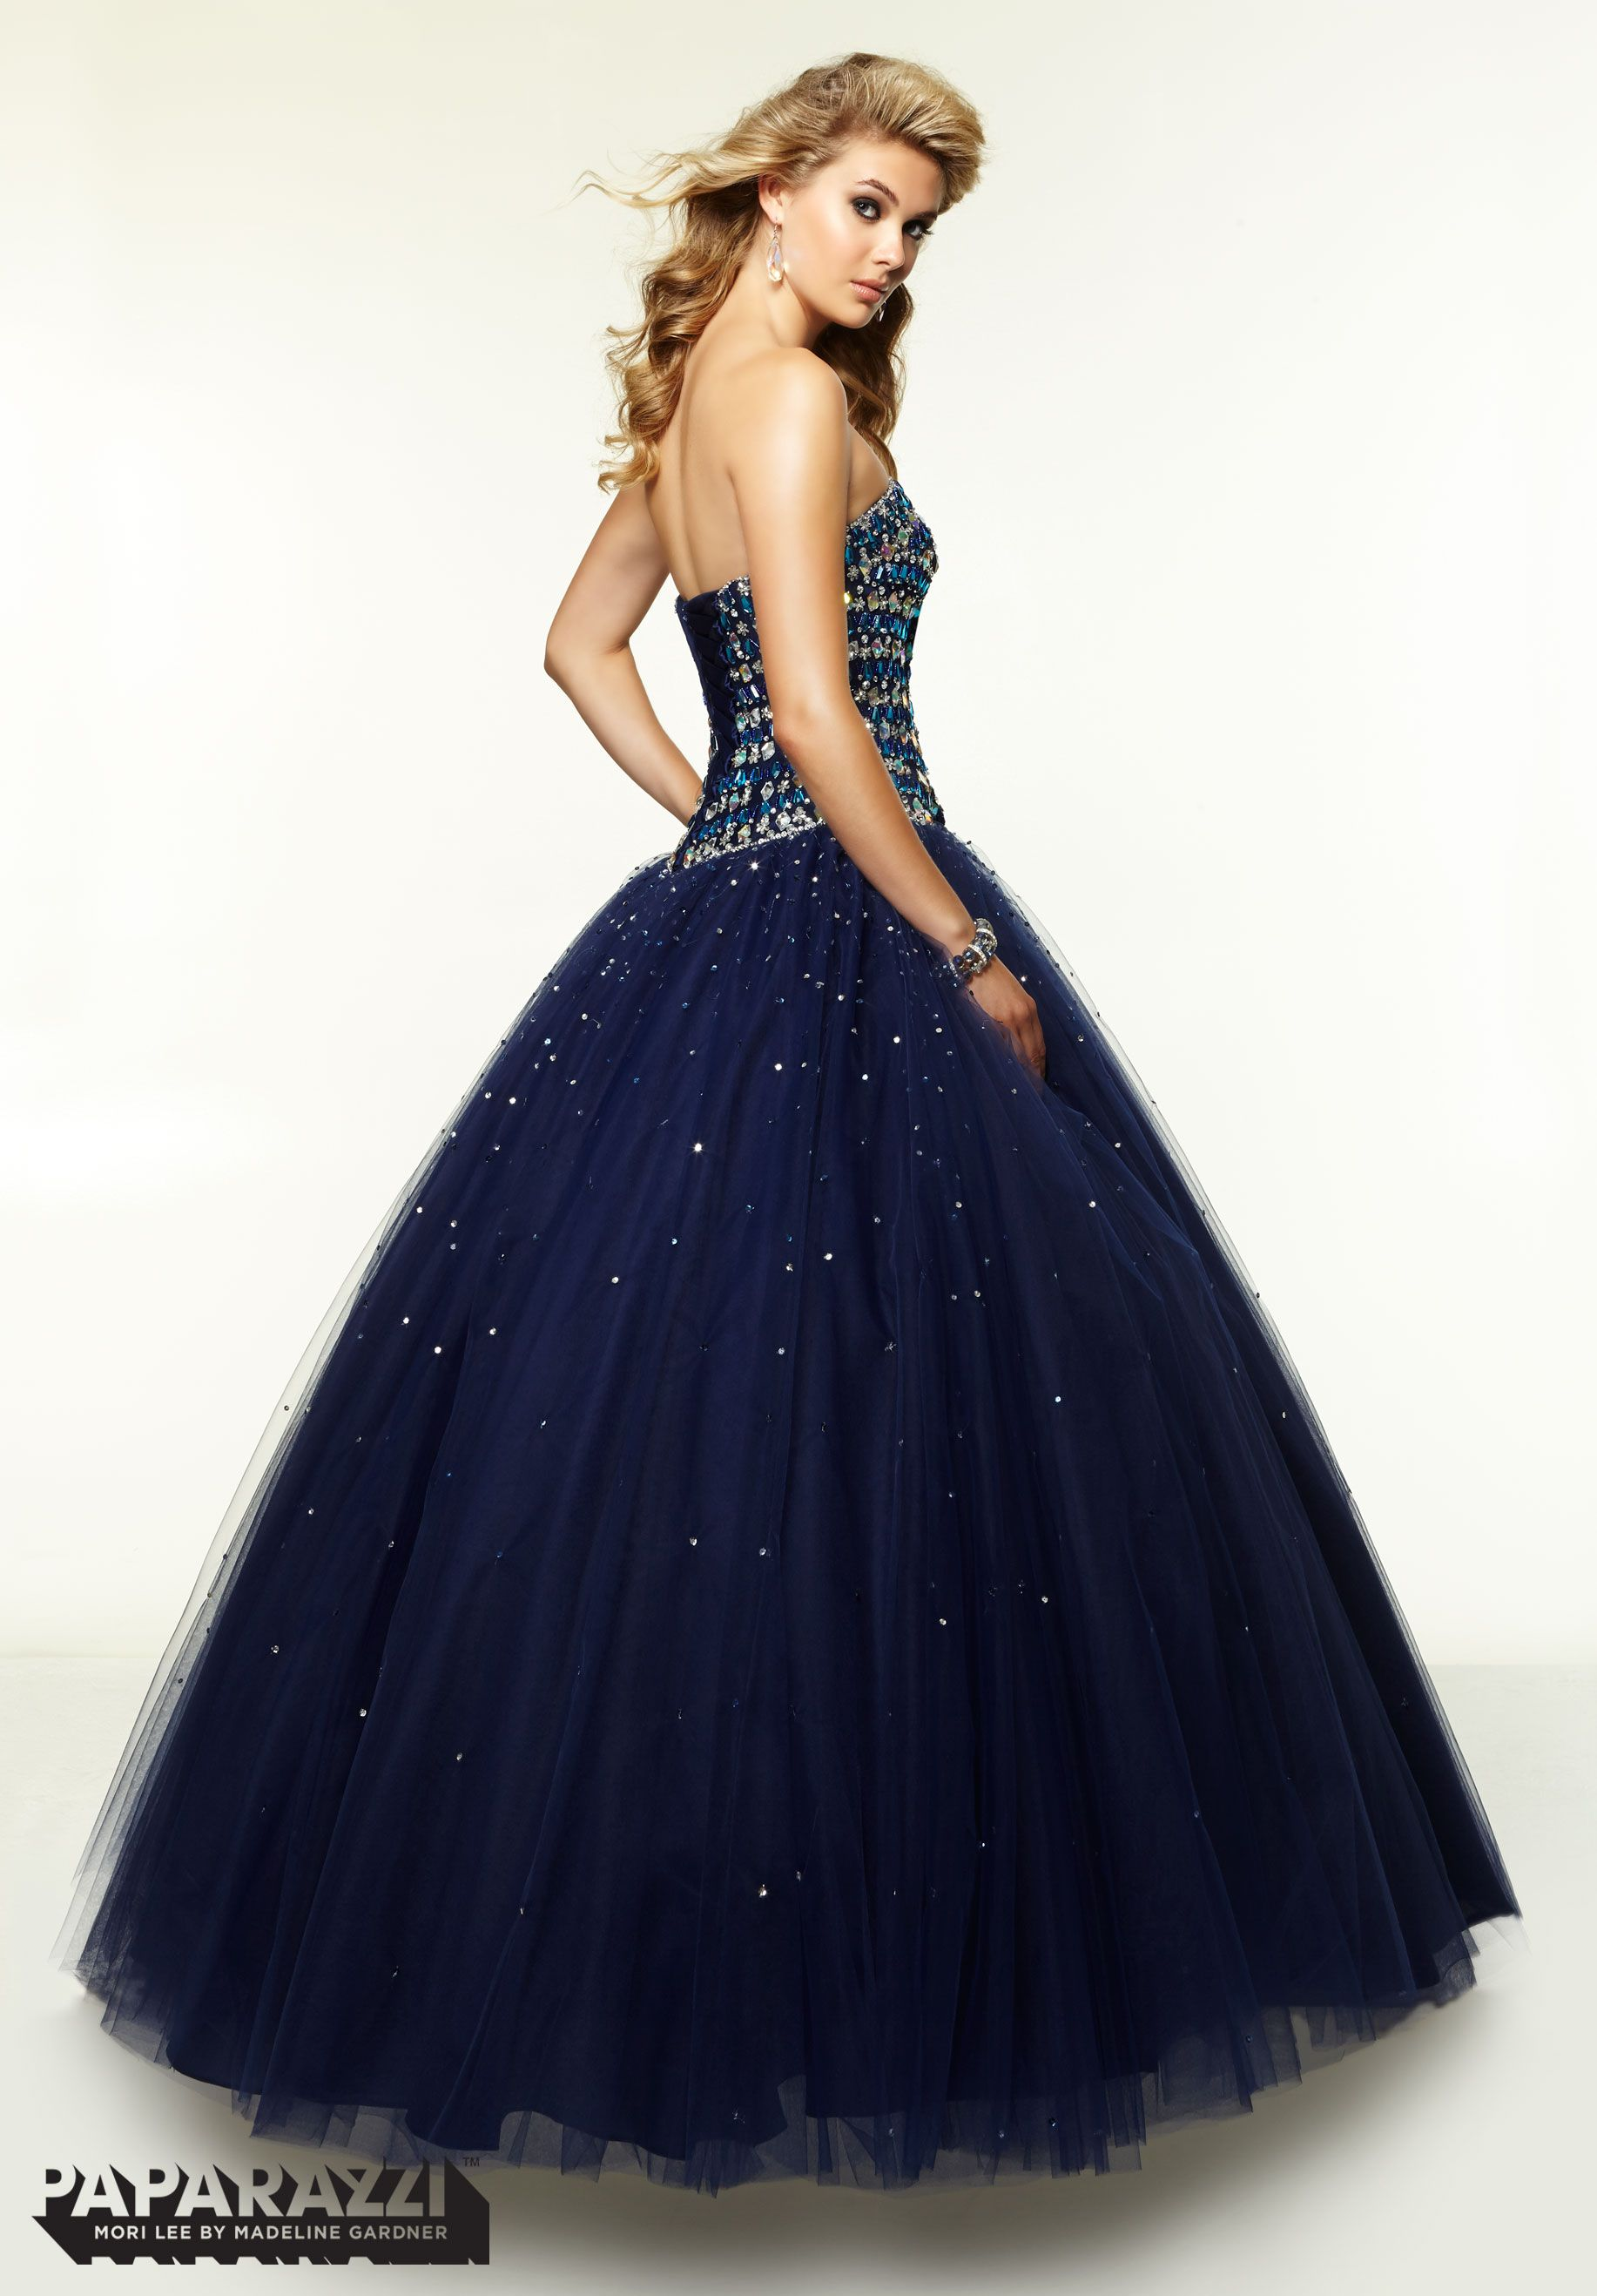 Prom dresses gowns style jeweled beading on tulle ballgown